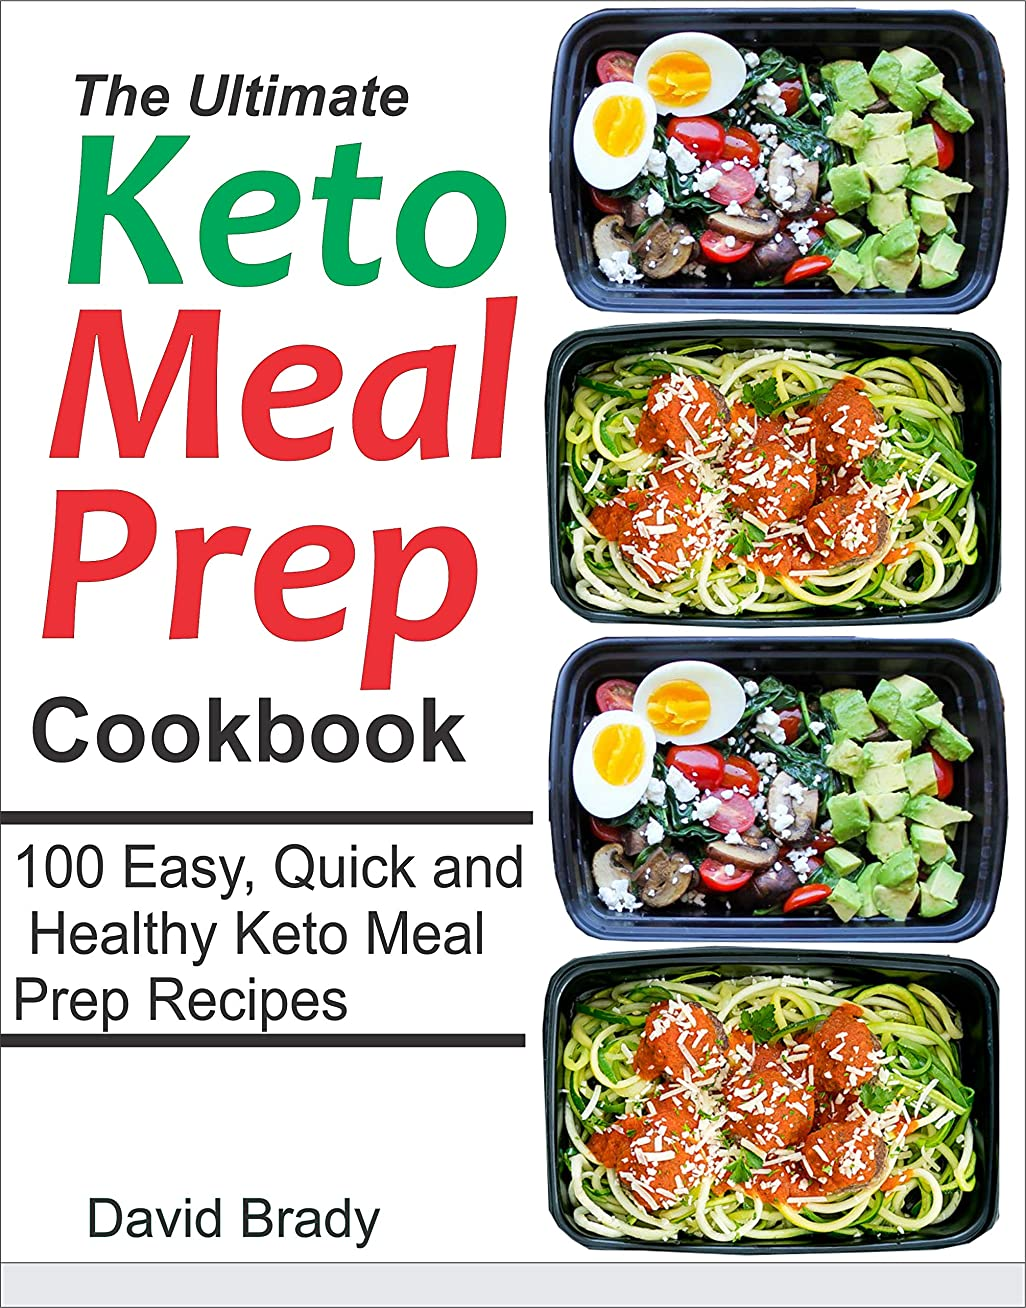 The Ultimate Keto Meal Prep Cookbook: 100 Easy, Quick and Healthy Keto Meal Prep Recipes (English Edition)